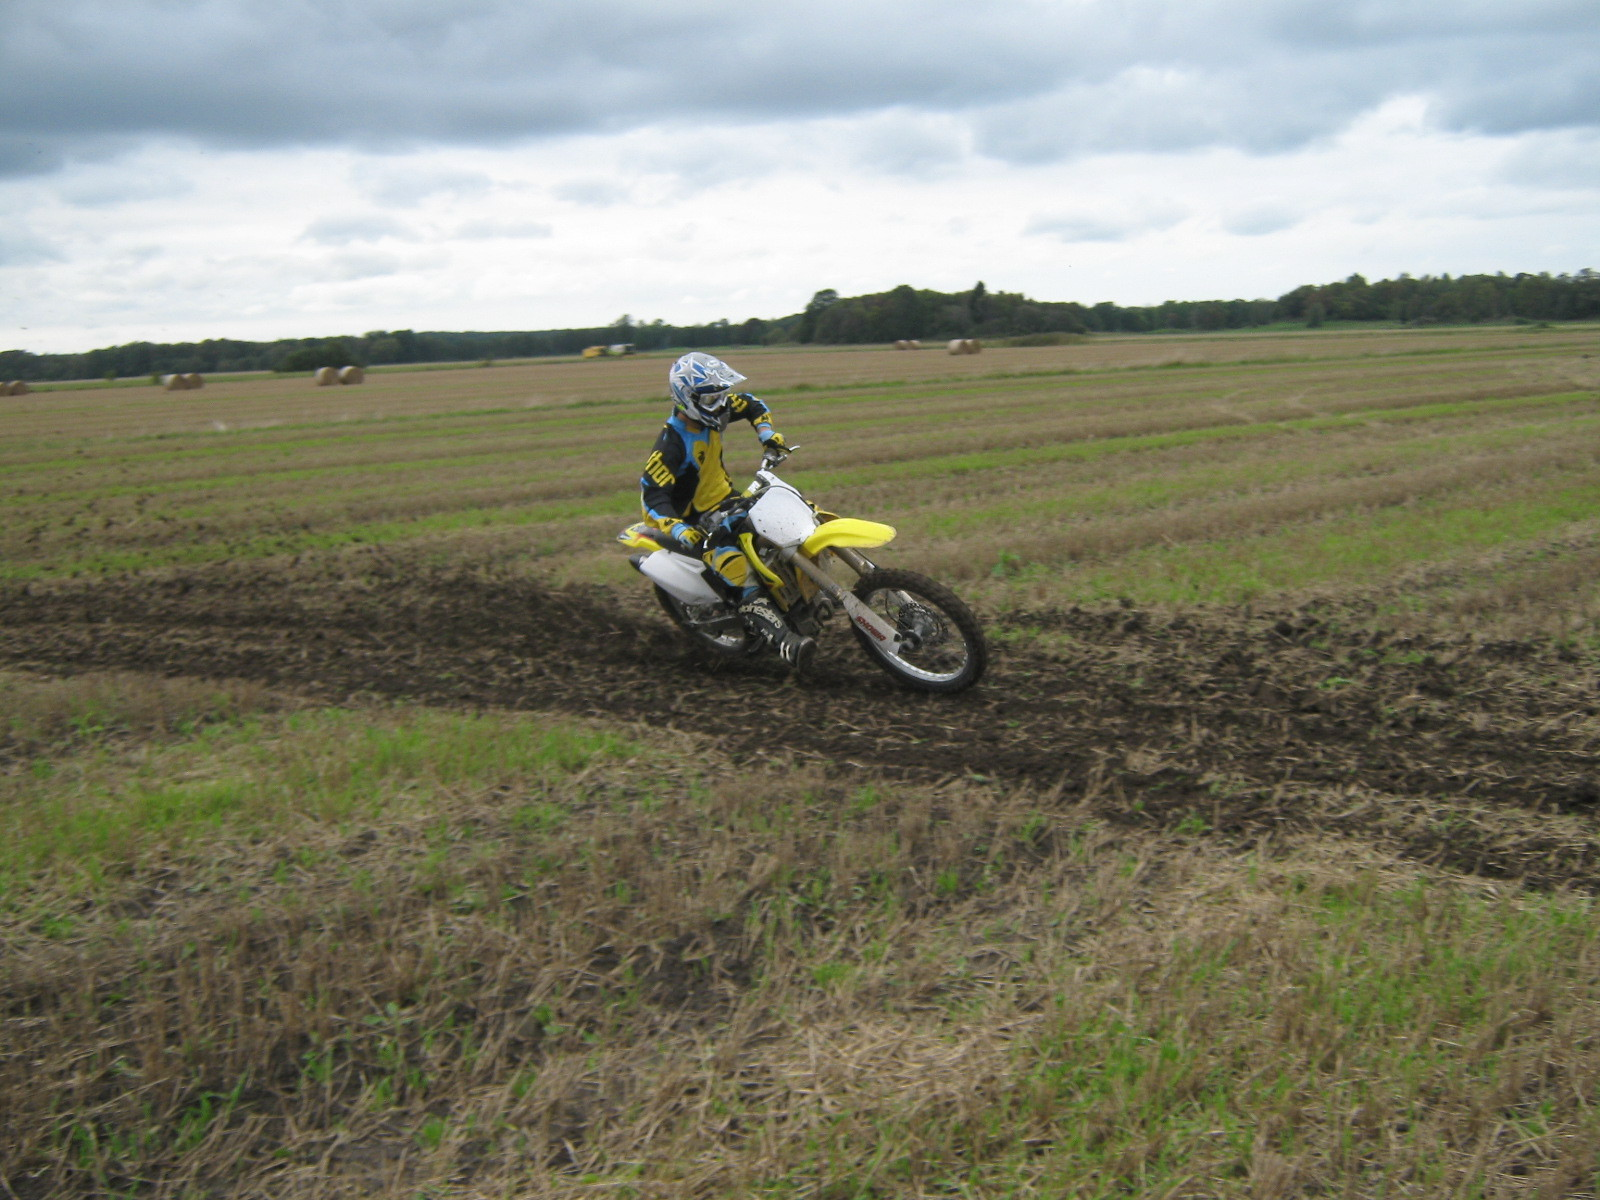 IMG 3416 - Swede - Motocross Pictures - Vital MX